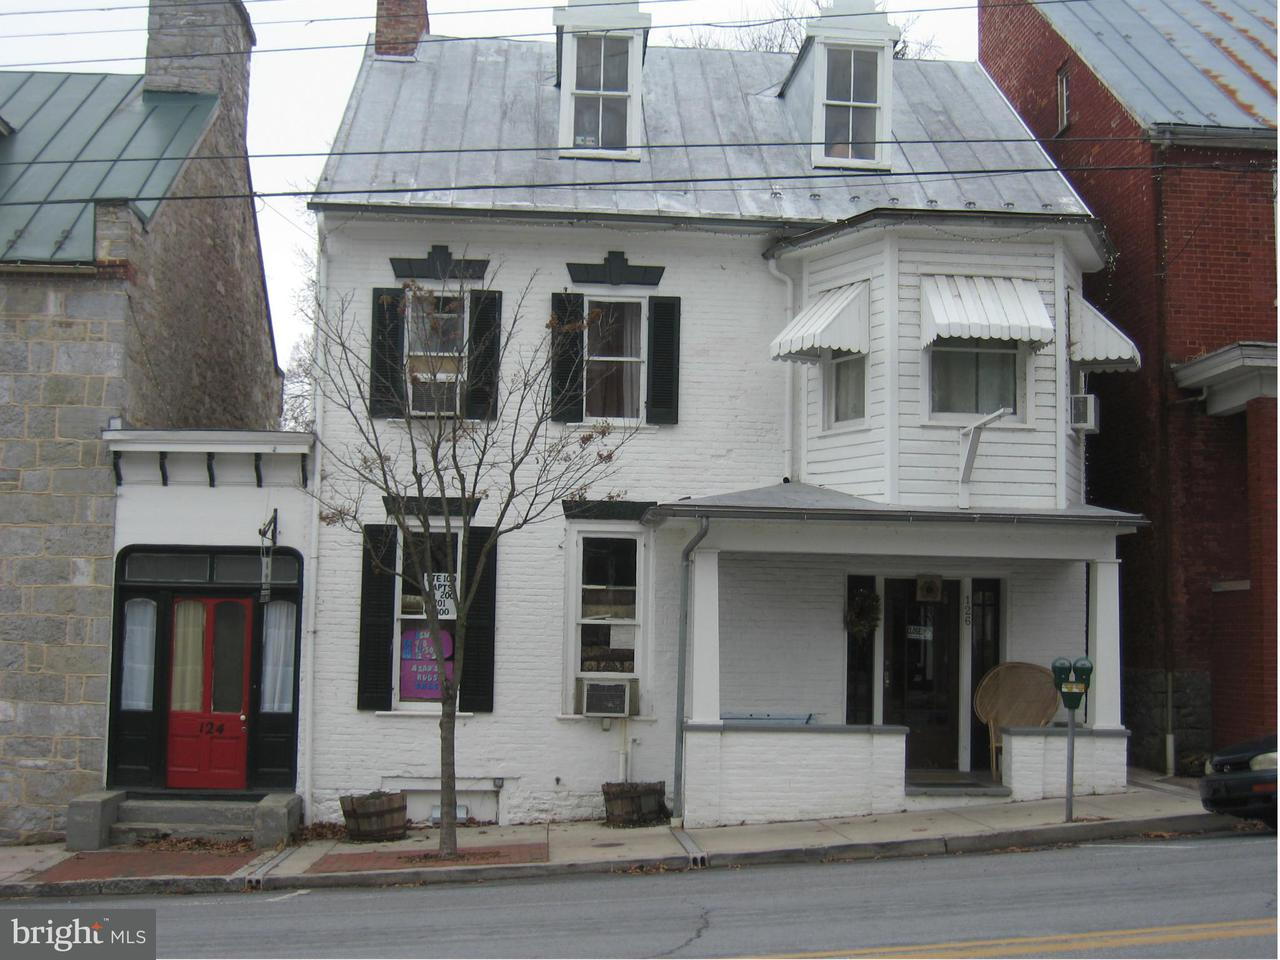 Commercial for Sale at 124126 GERMAN ST W 124126 GERMAN ST W Shepherdstown, West Virginia 25443 United States